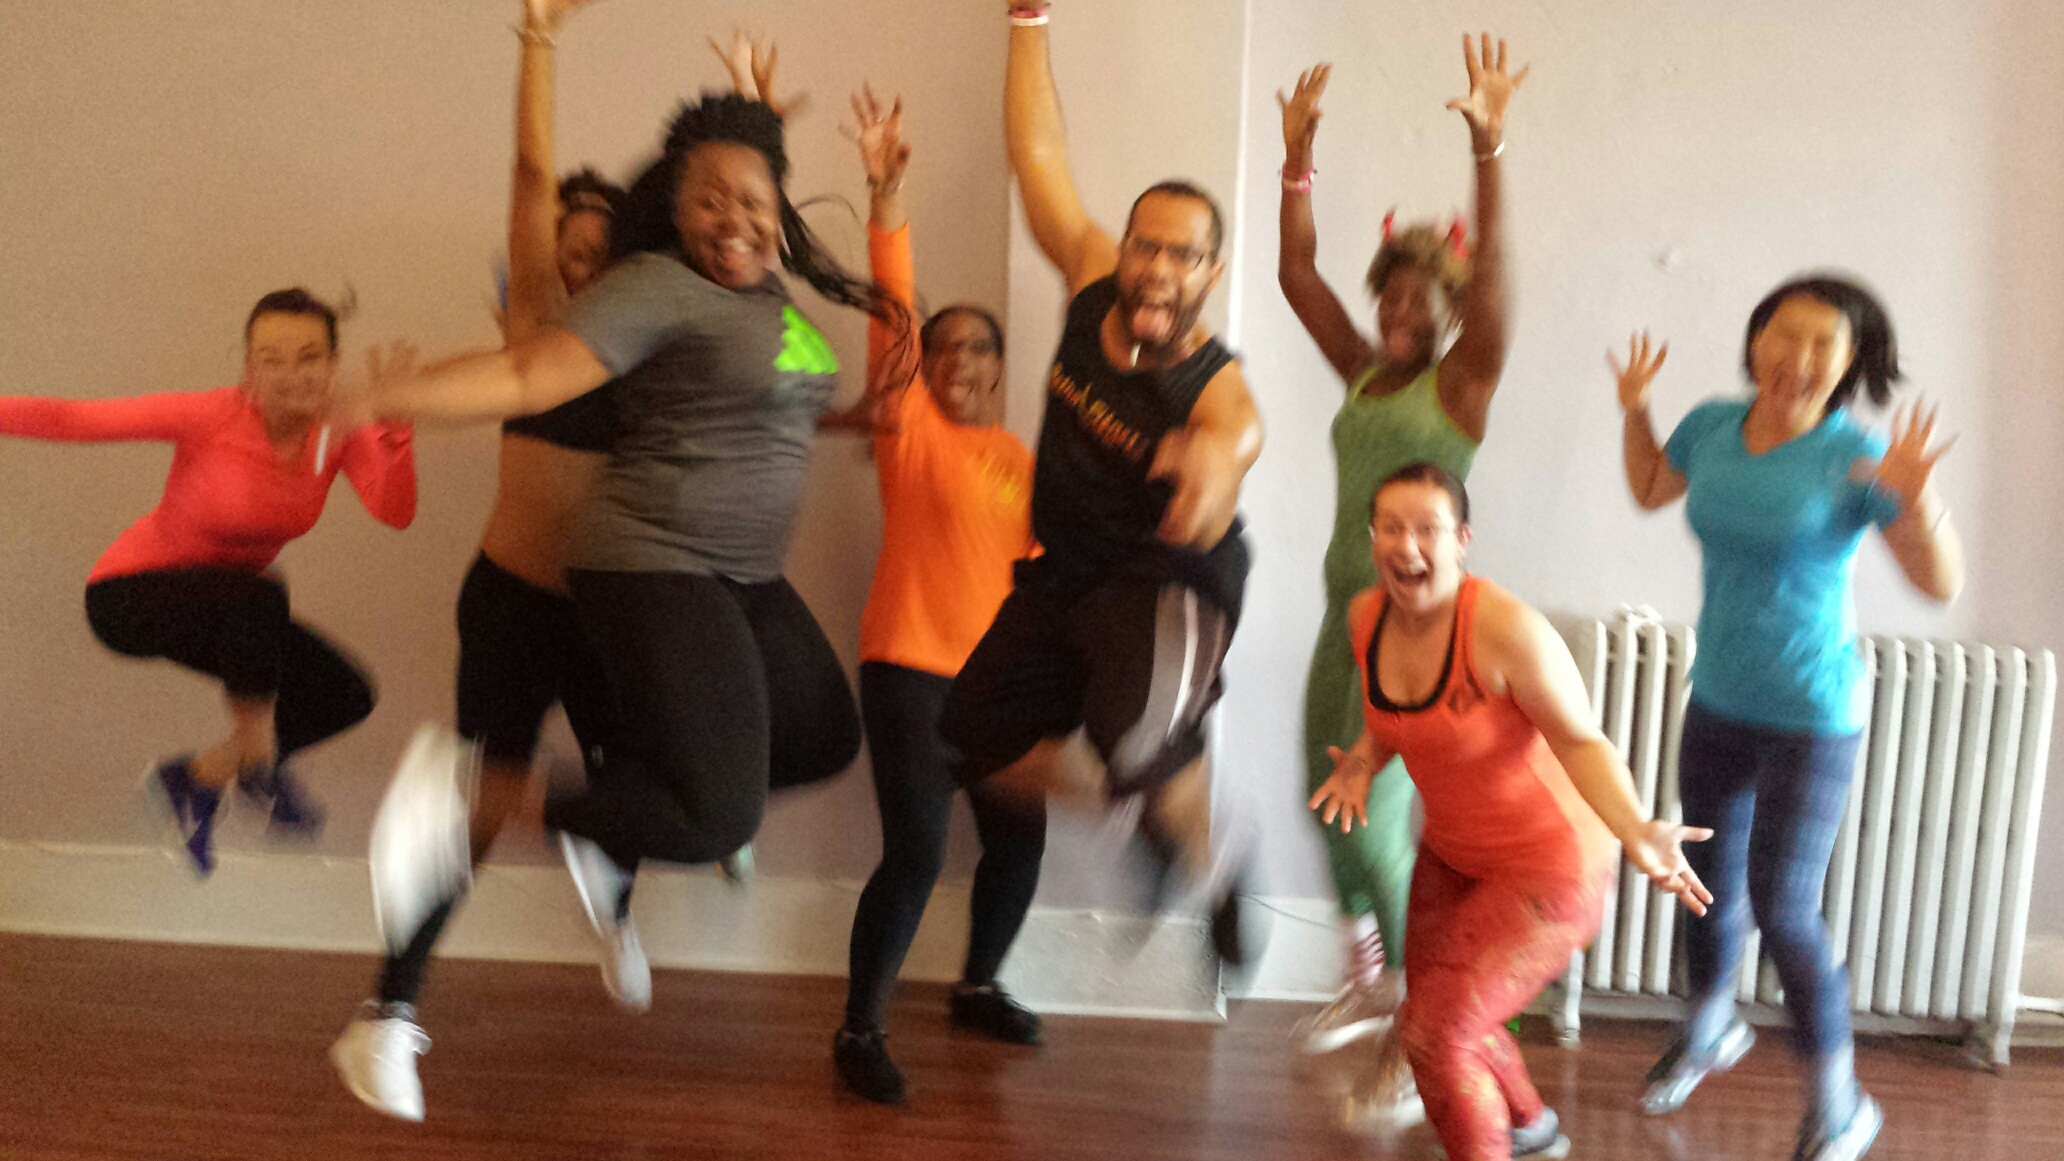 Our fun zumba classes in new rochelle